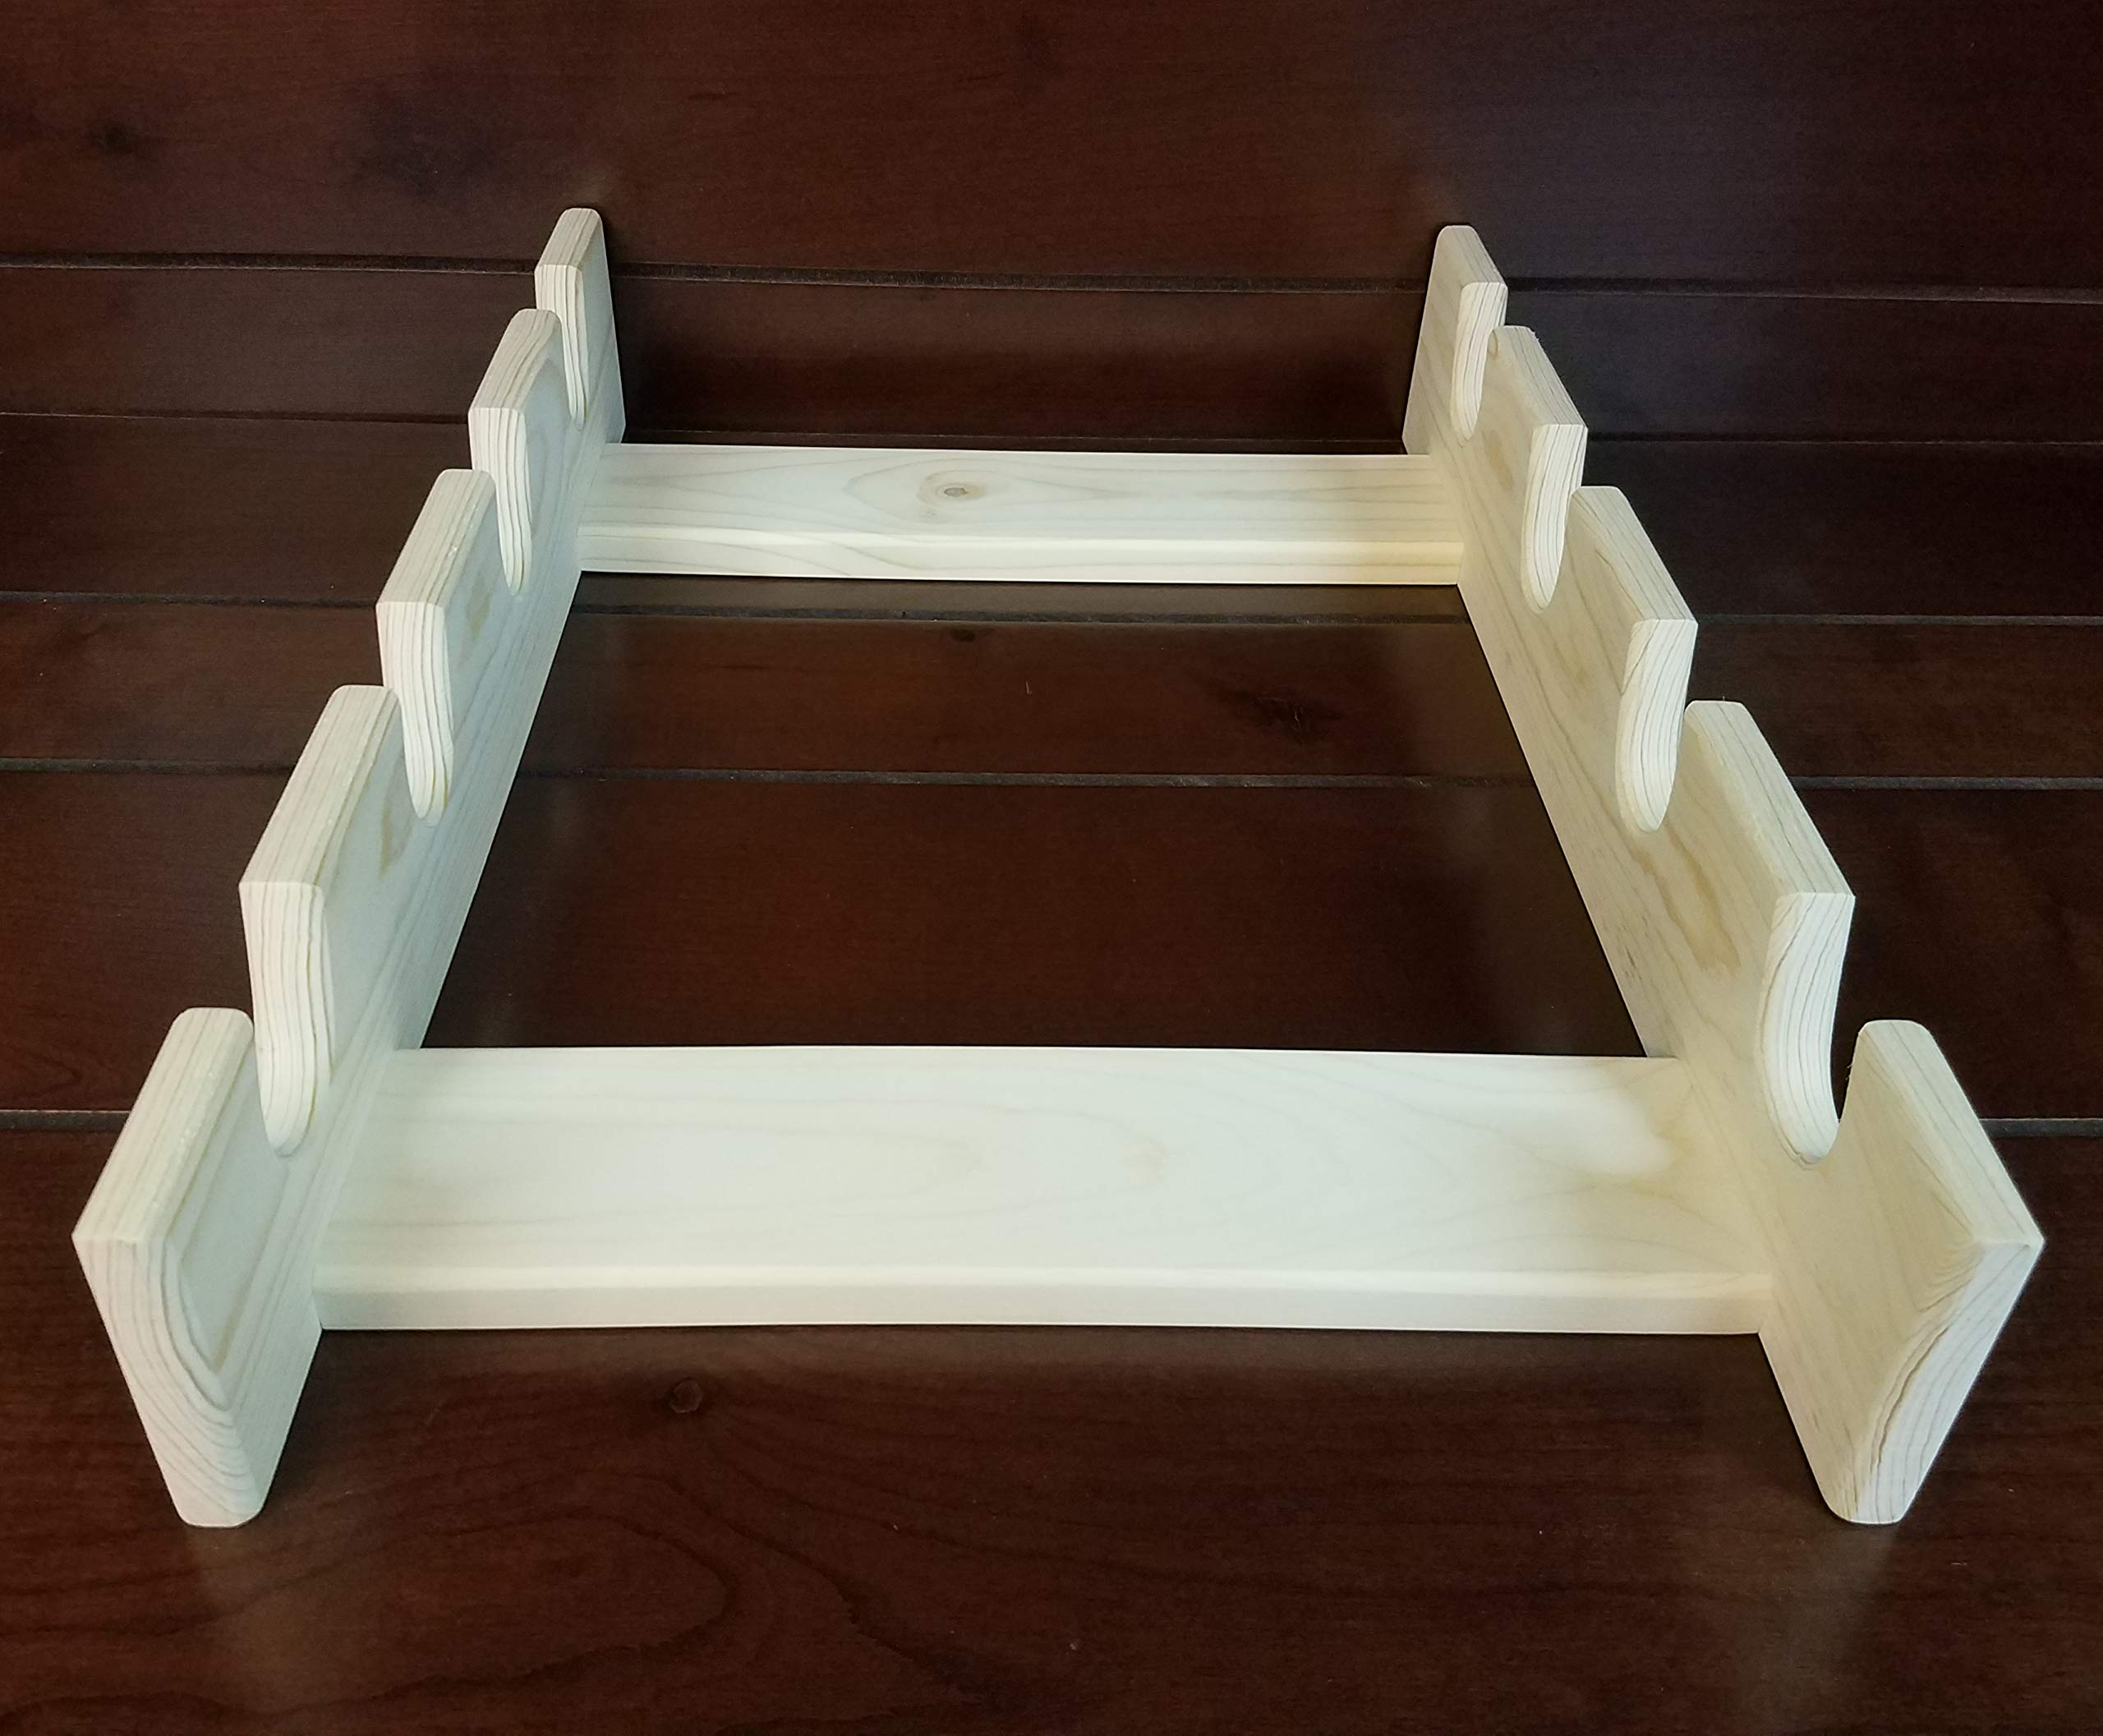 Rolling Pin Rack with Four Slots - Multiple Rolling Pin Rack - Rolling Pin Holder - Rolling Pin Storage - 4 Rolling Pin Rack by Rusty Nail Custom Woodworking (Image #8)